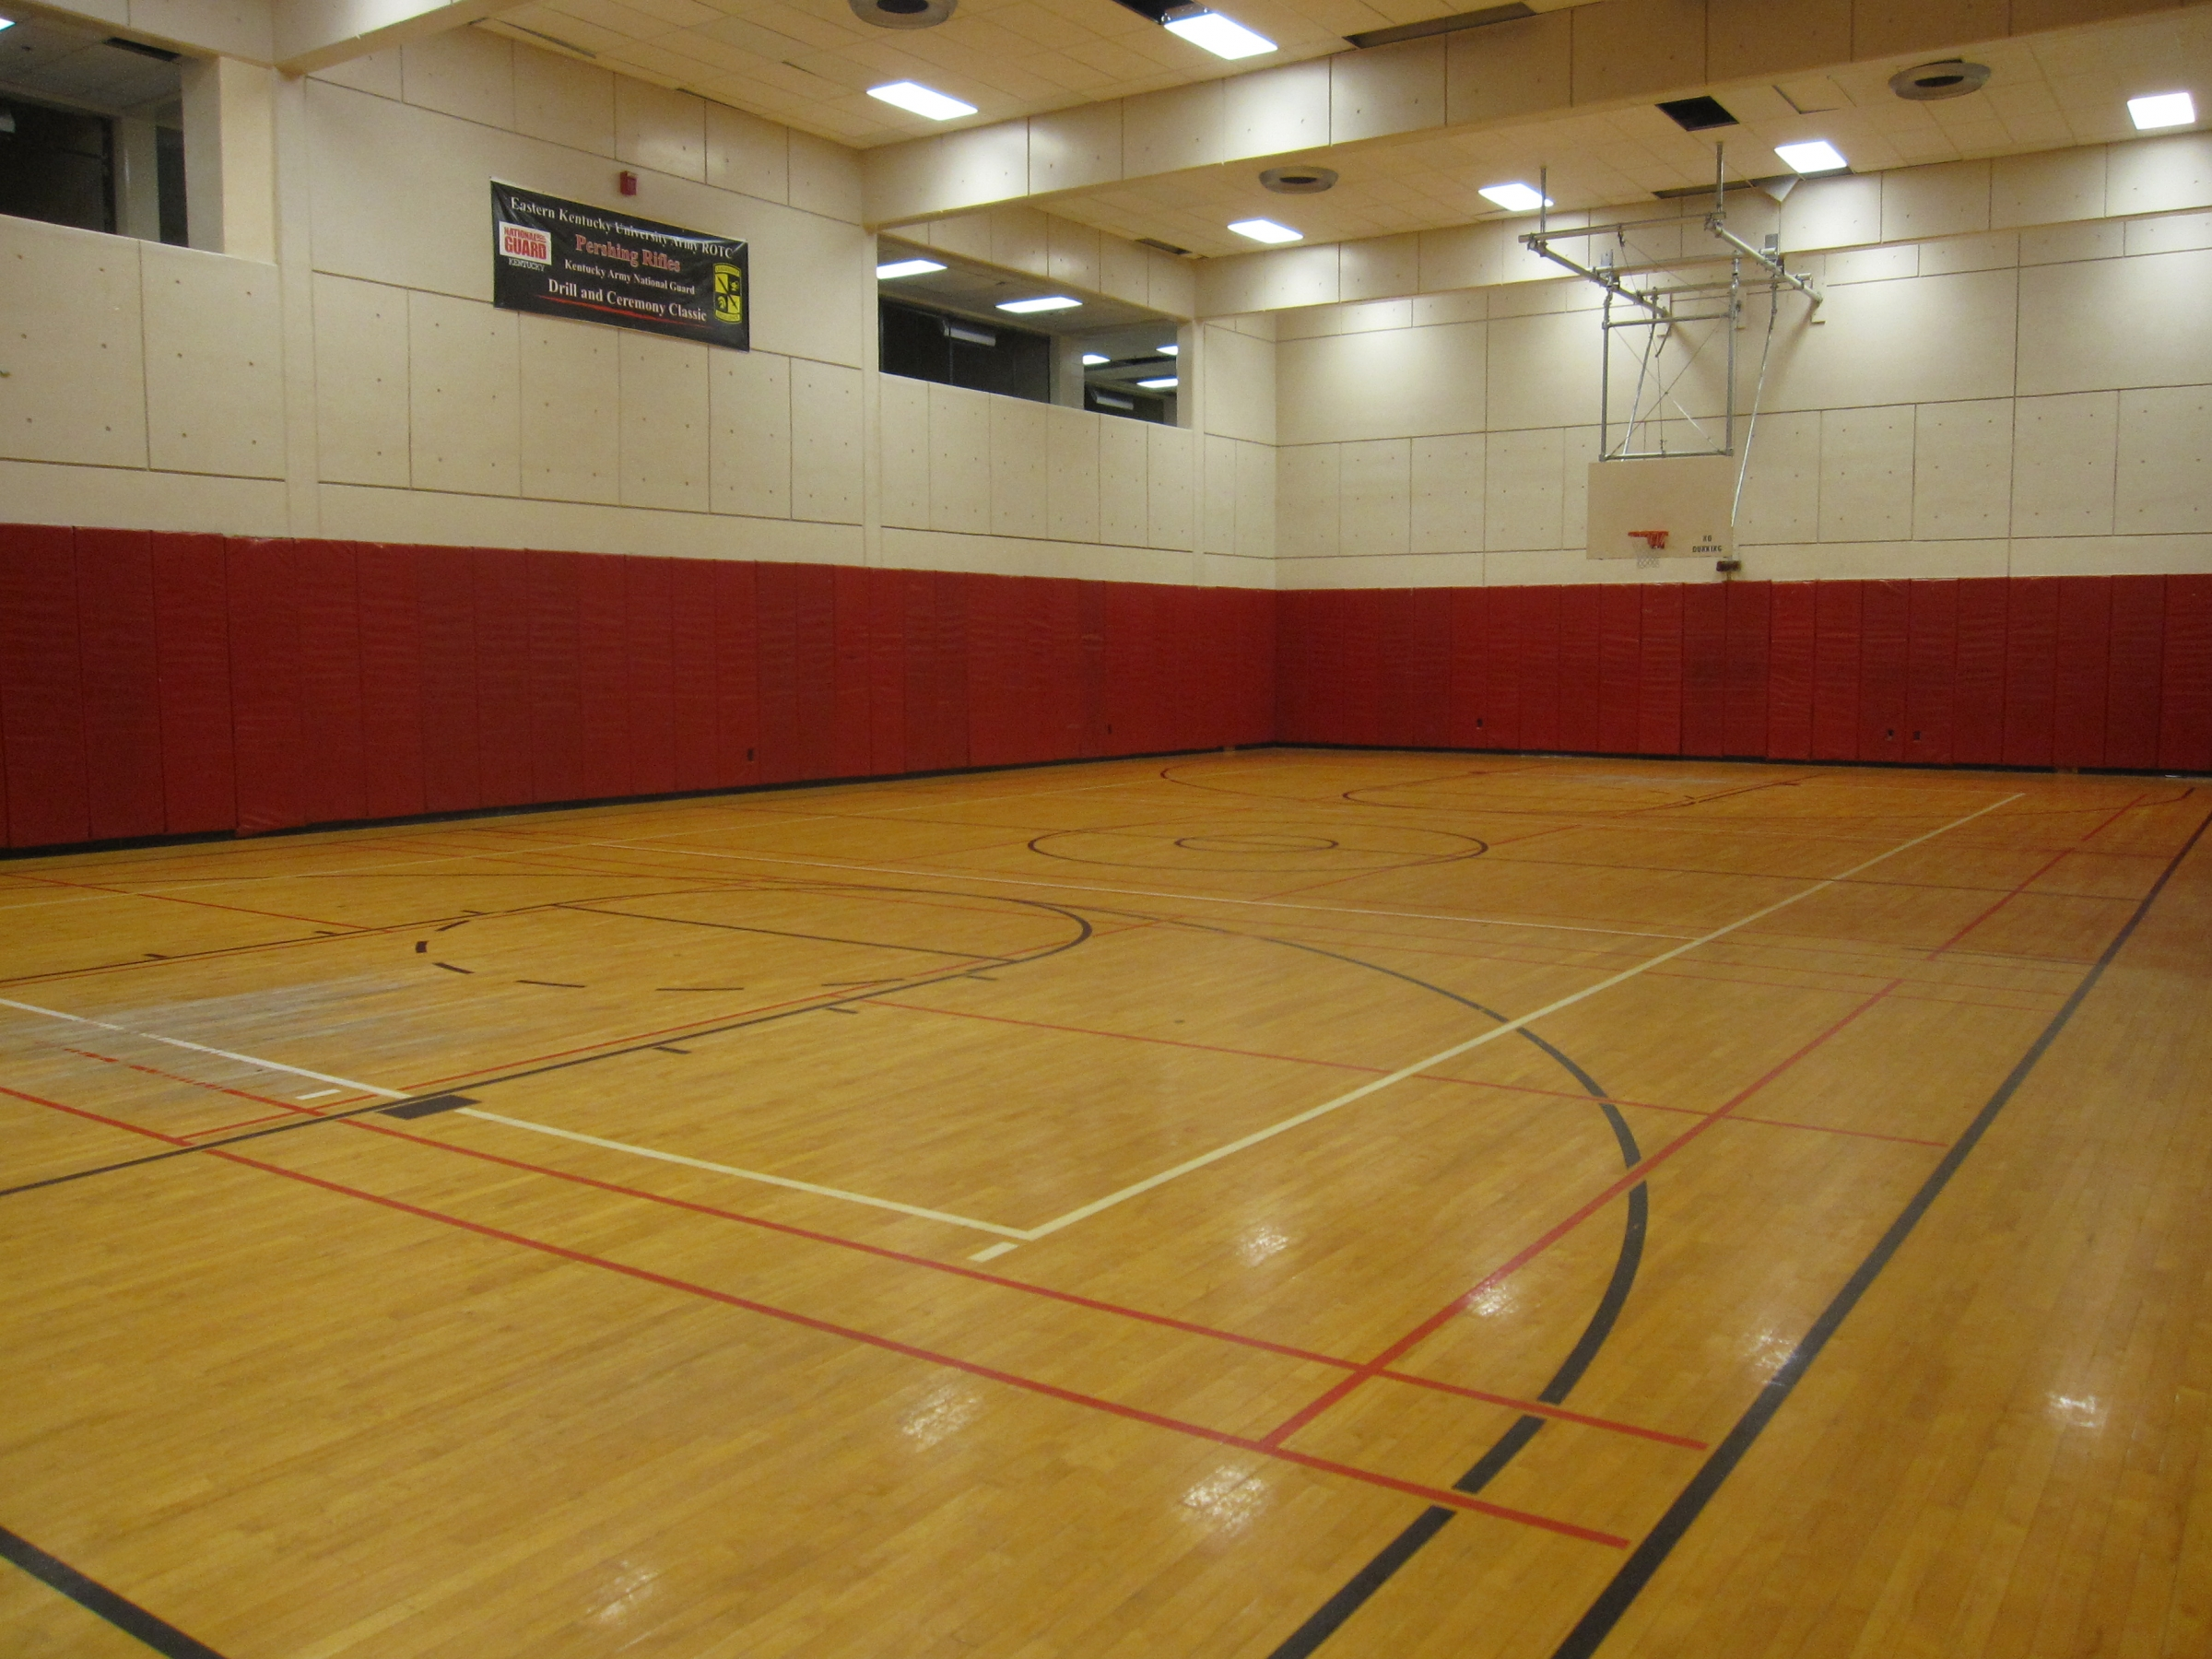 Facilities campus recreation eastern kentucky university for Build indoor basketball court